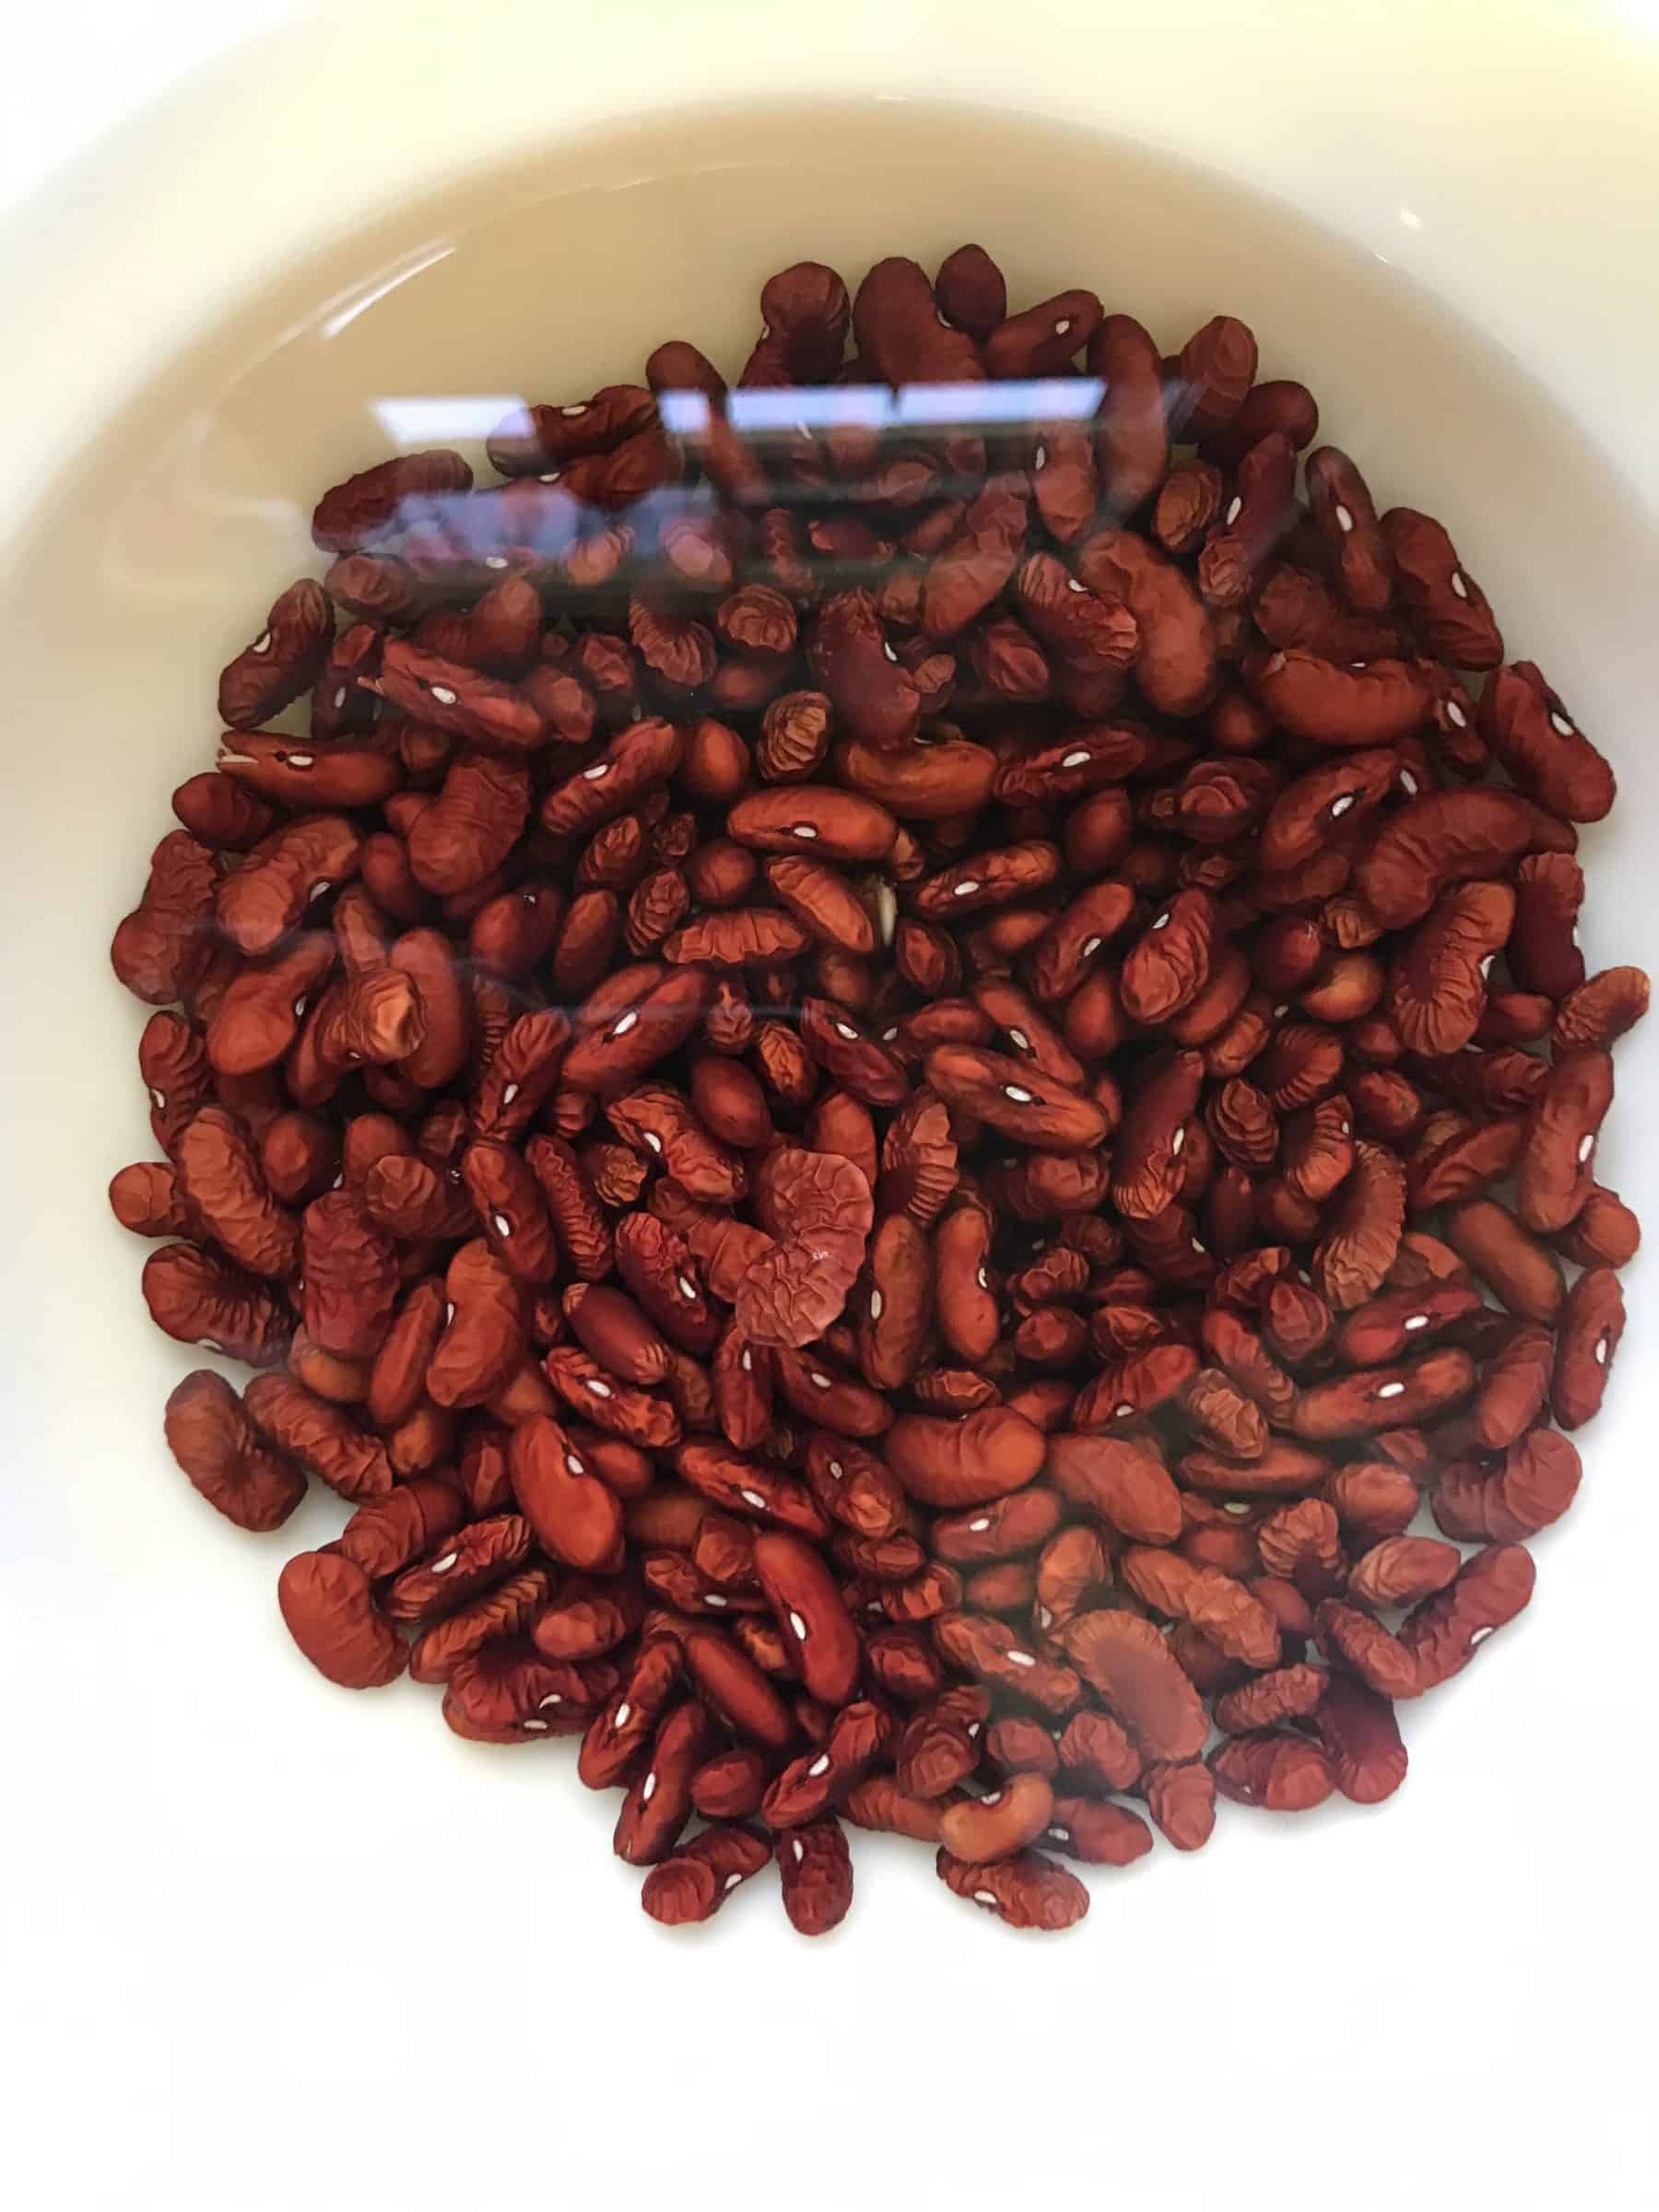 Red Kidney Beans Soaking